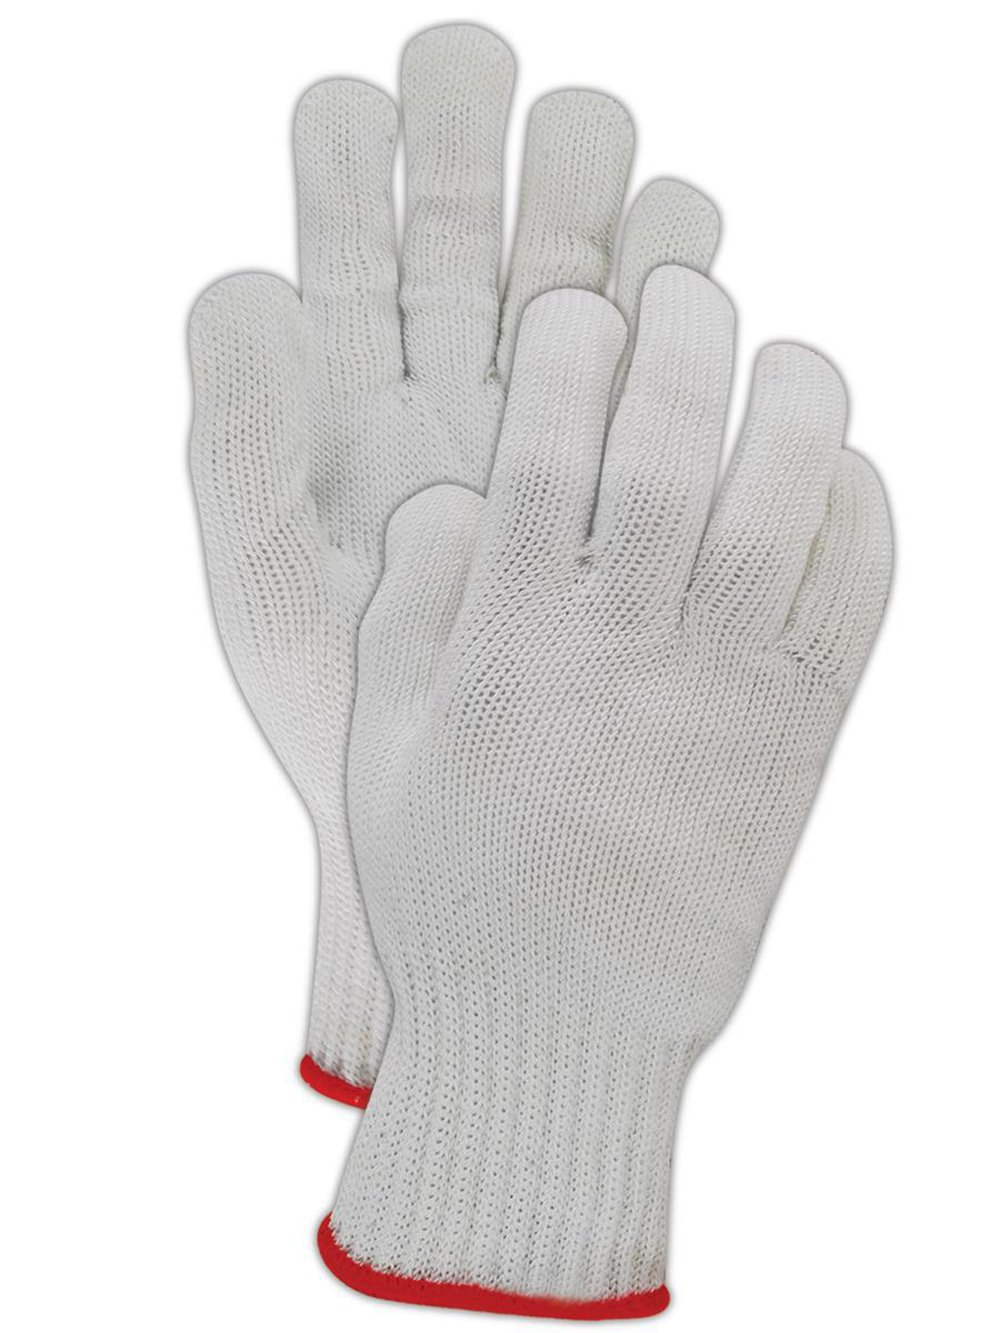 Magid CutMaster SP7255 Non-Coated Spectra Glove ANSI Cut Level 5 Reversible Ambidextrous White Heavyweight 1 Glove Large